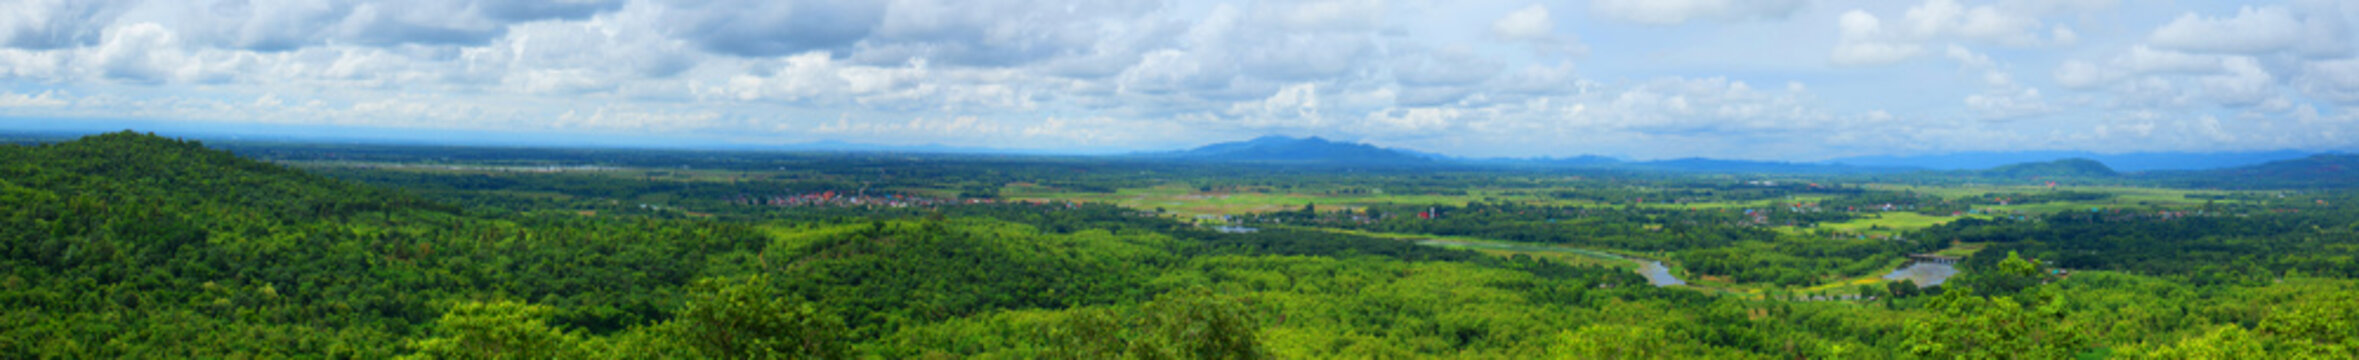 panorama of nature mountain view wide landscape rural country in Thailand.